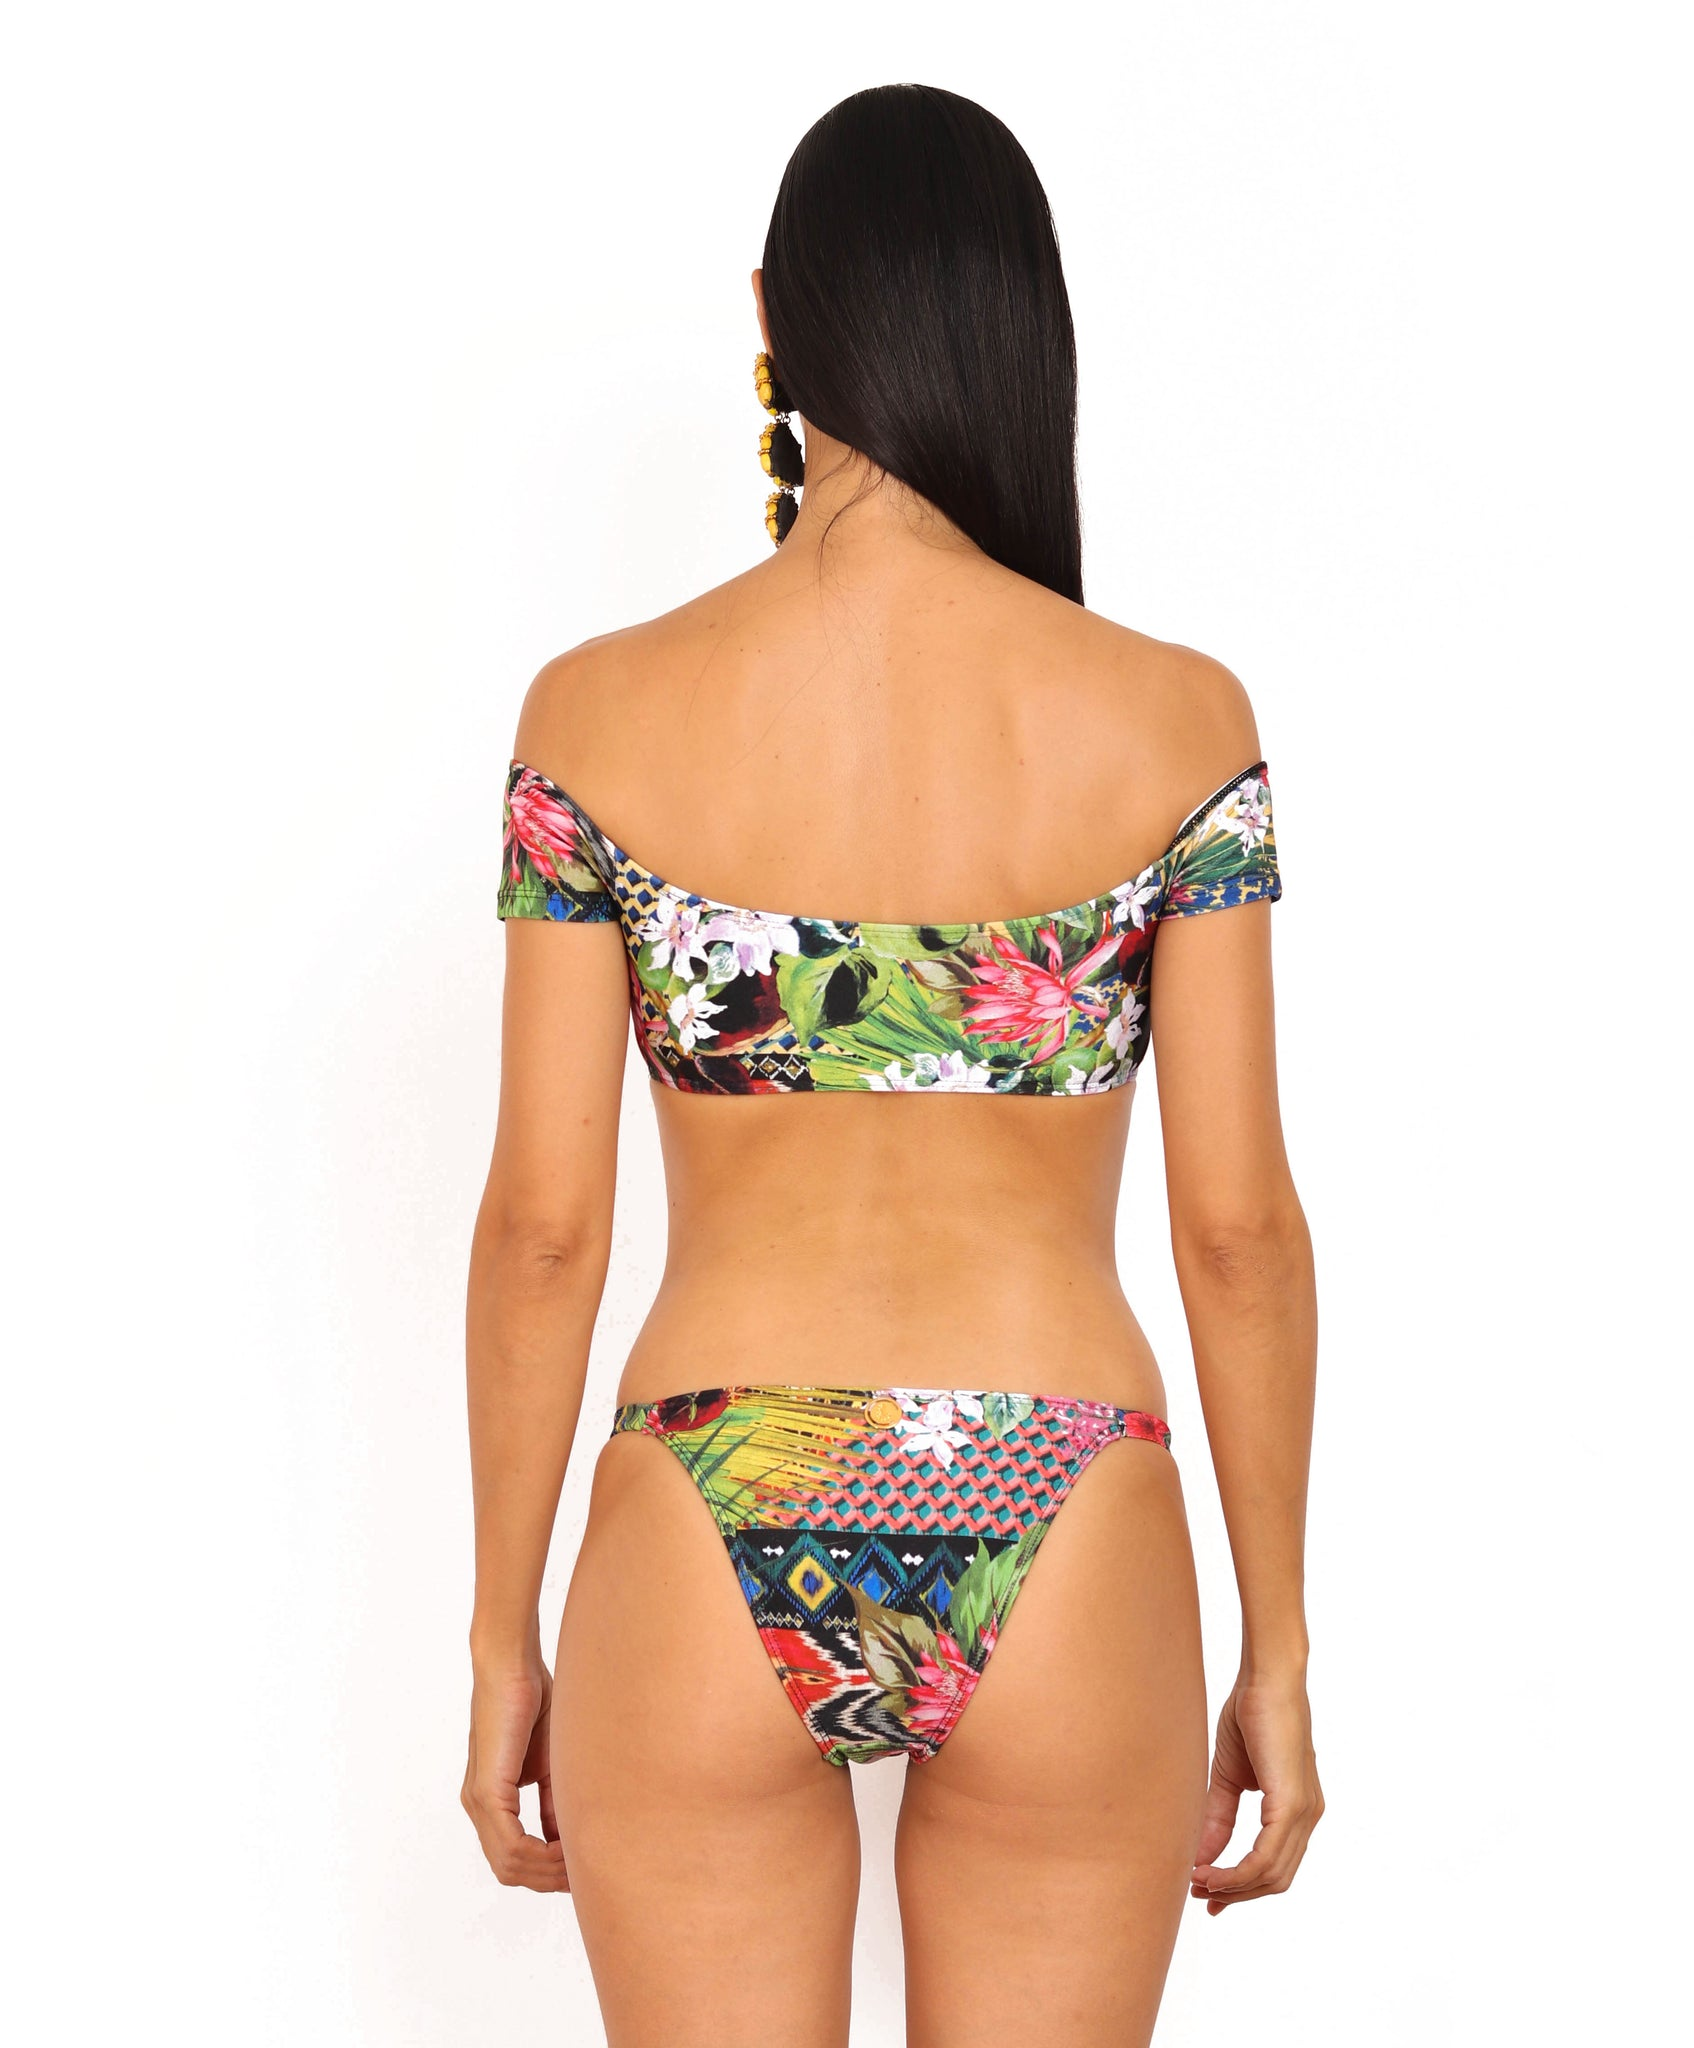 CARLOTA Top BARU - swimwear online philippines